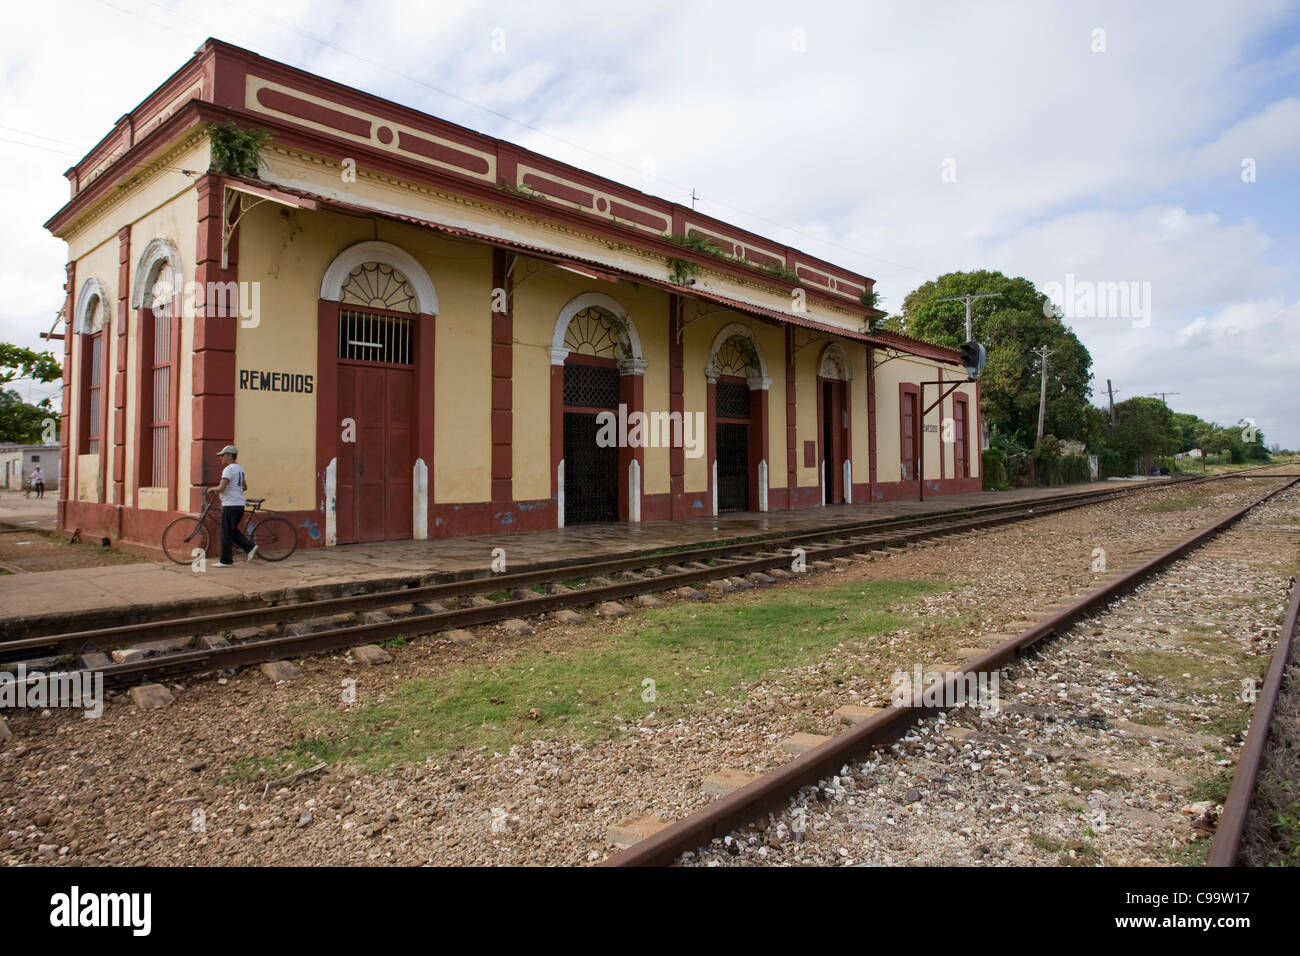 The railway station of Remedios which will soon be heaving with visitors for the parade. - Stock Image